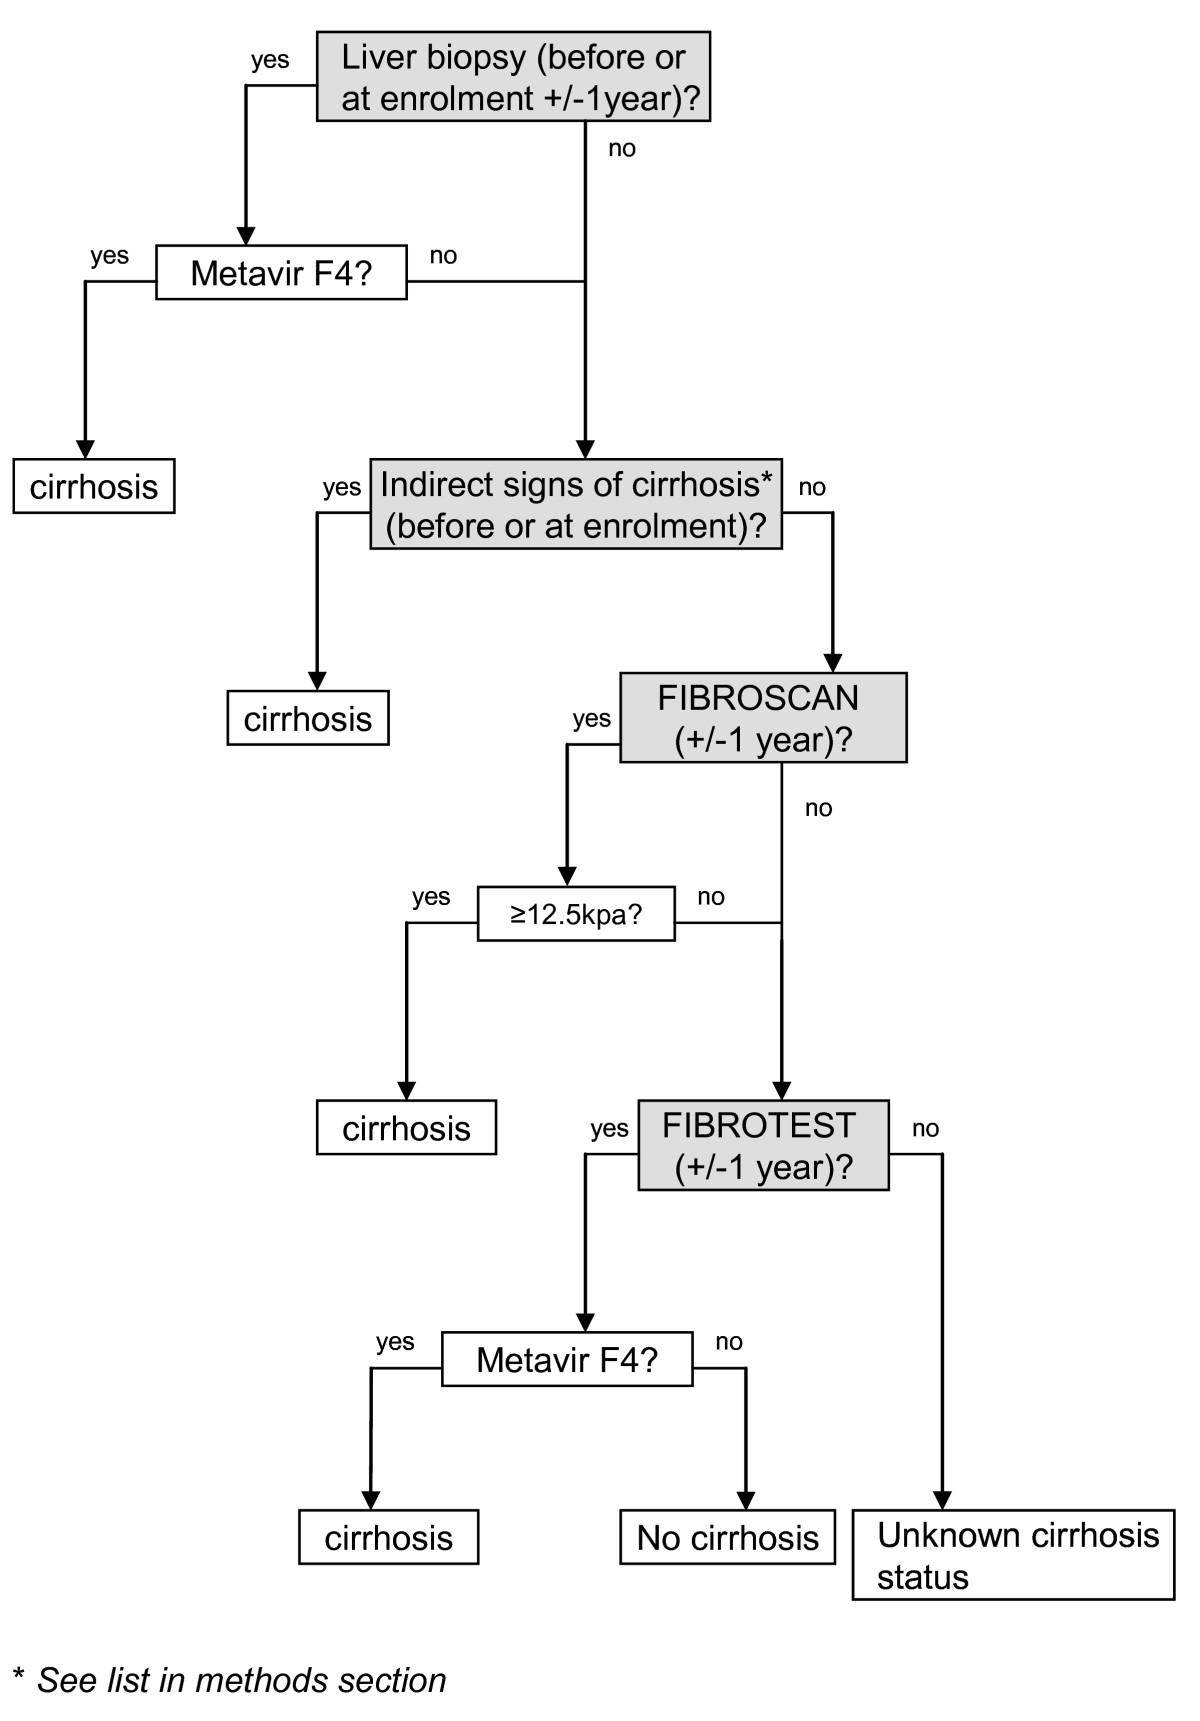 http://static-content.springer.com/image/art%3A10.1186%2F1471-2334-10-303/MediaObjects/12879_2010_Article_1283_Fig1_HTML.jpg